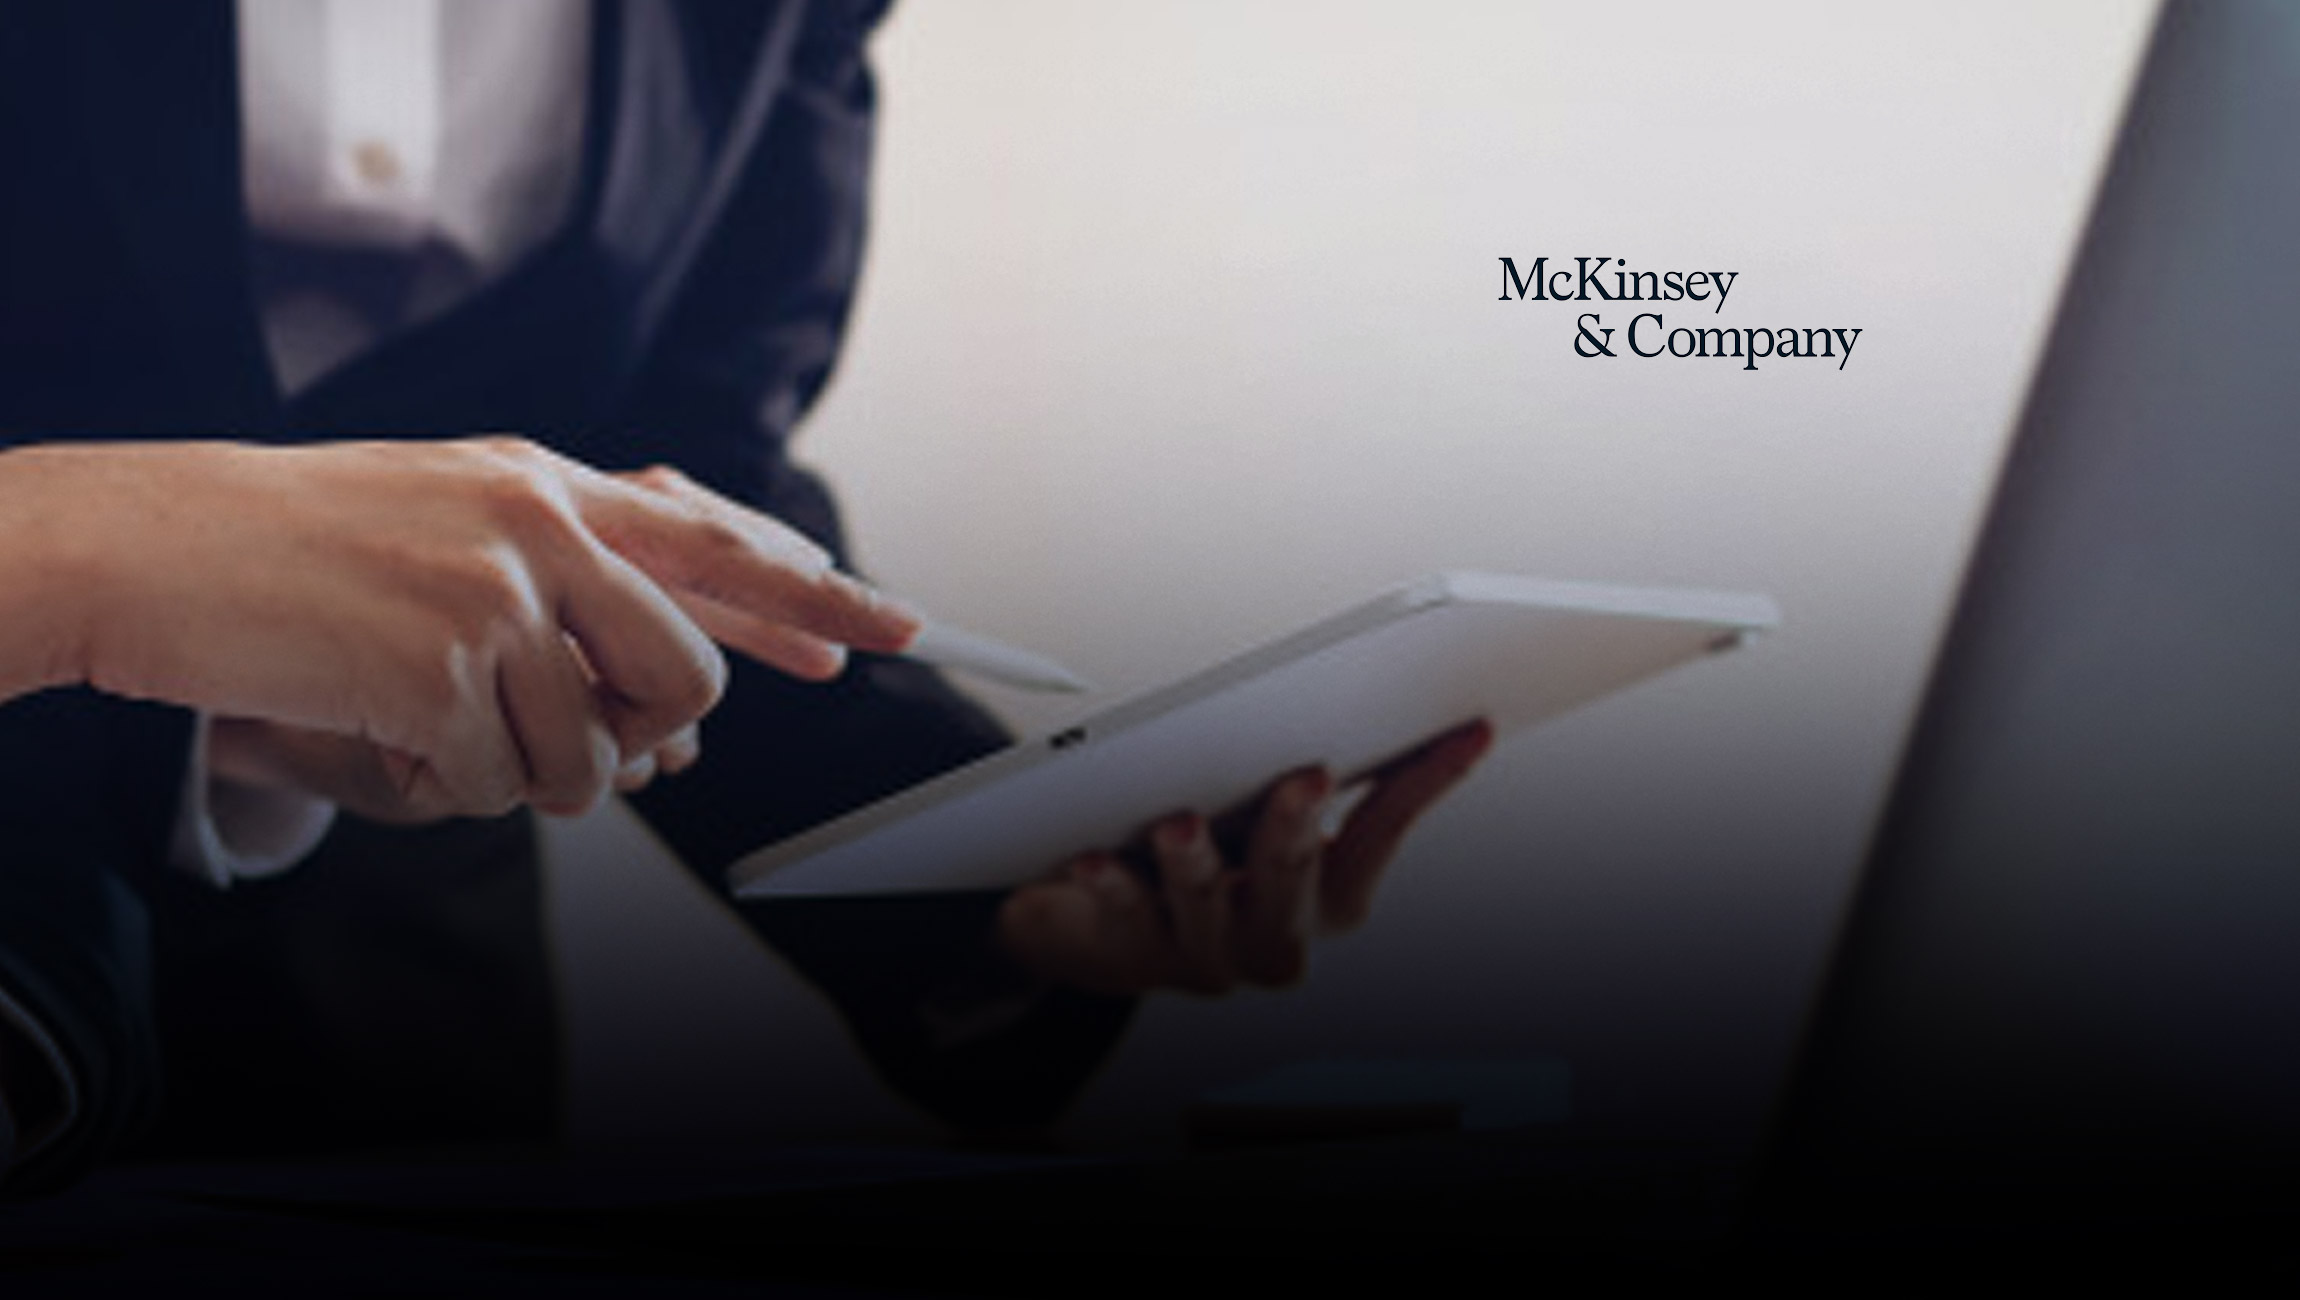 McKinsey & Company Revolutionizes Customer Experience with Experience DNA Launch